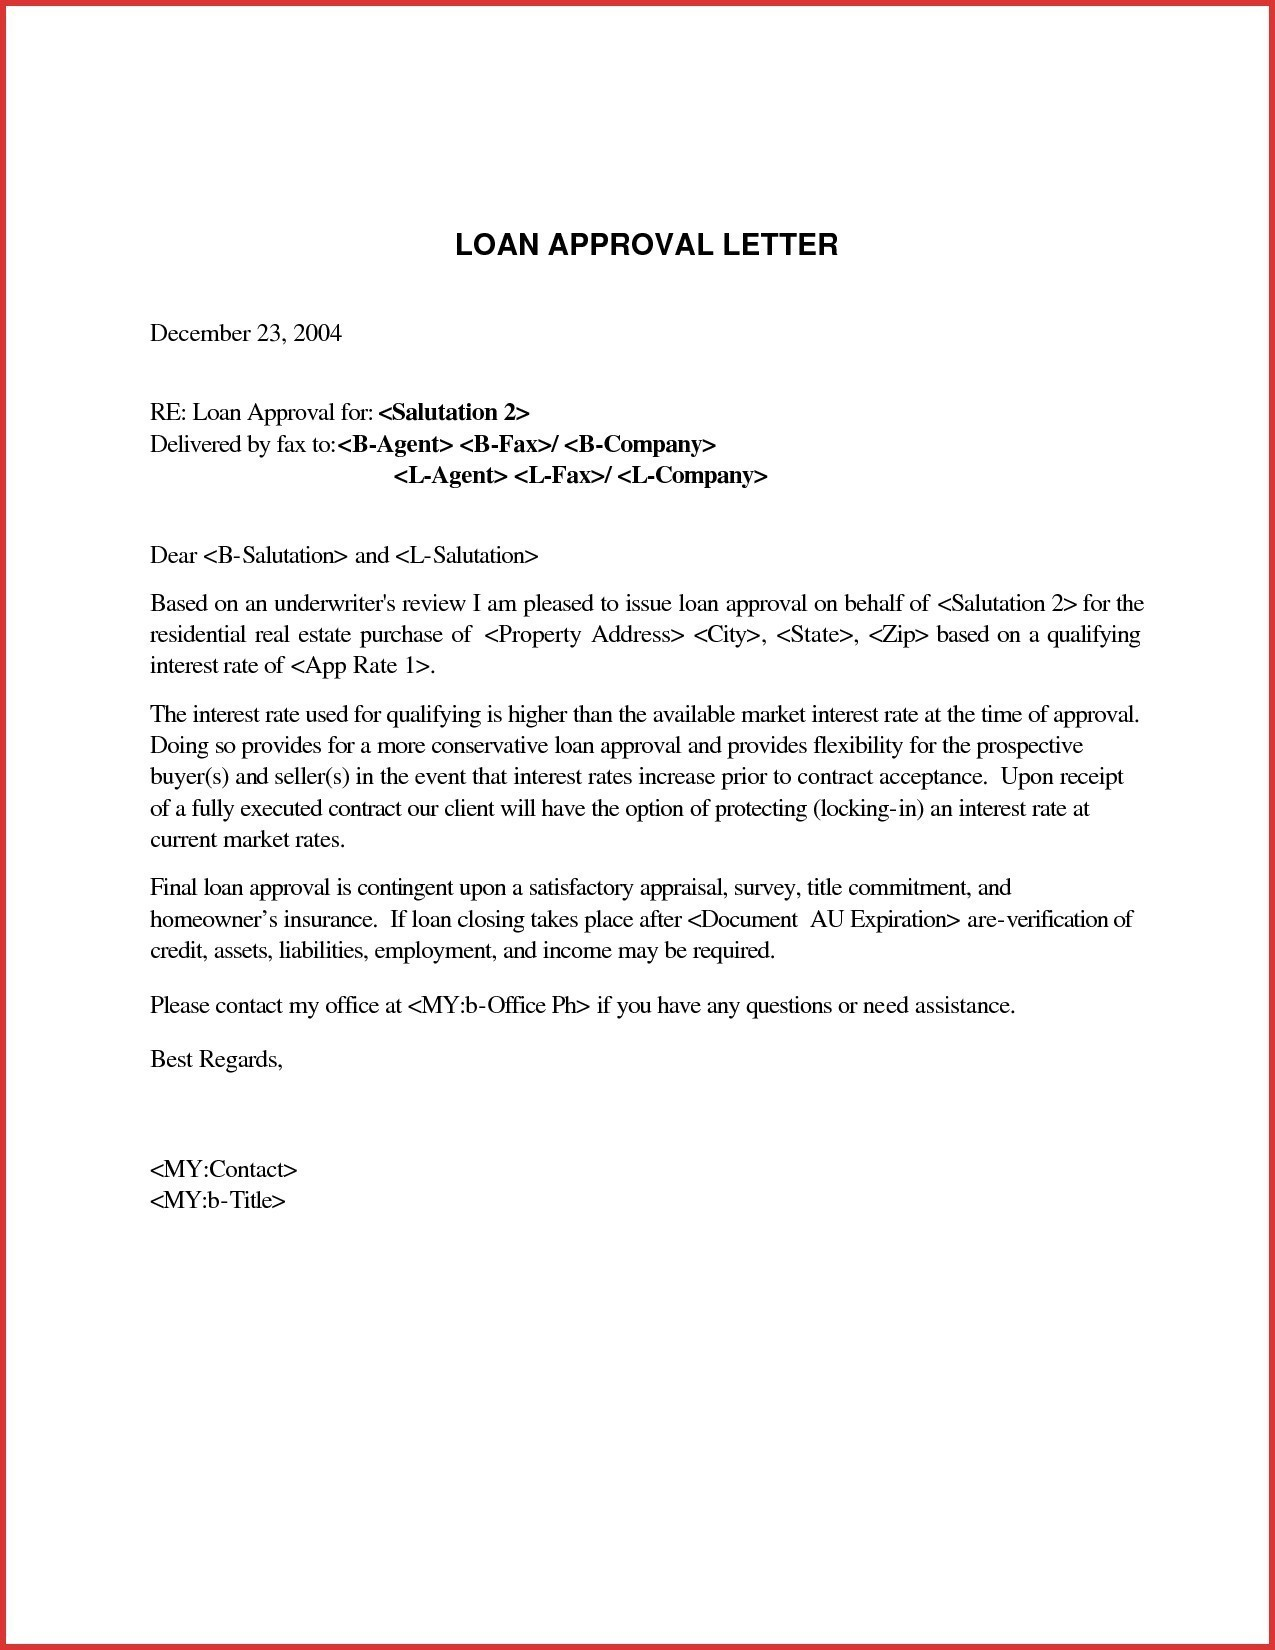 mortgage approval letter template collection letter template